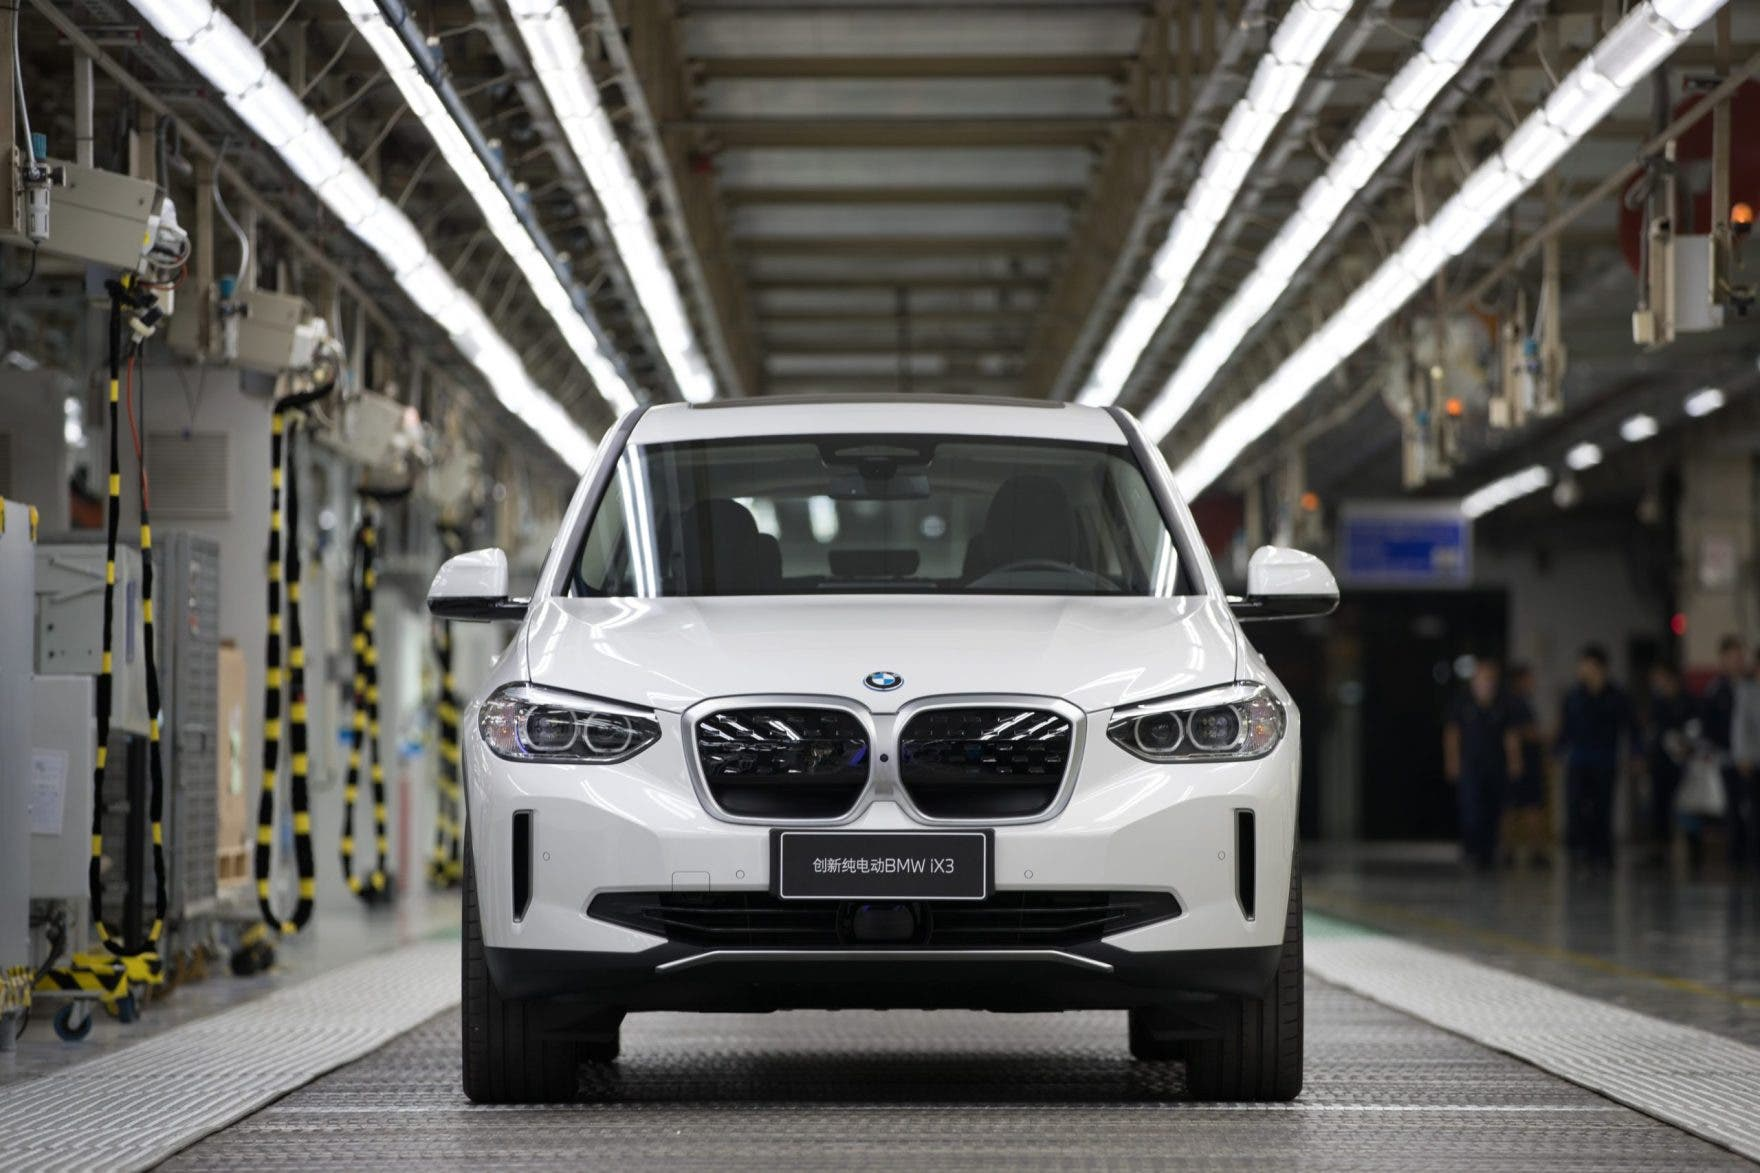 BMW iX3 electric SUV China production line